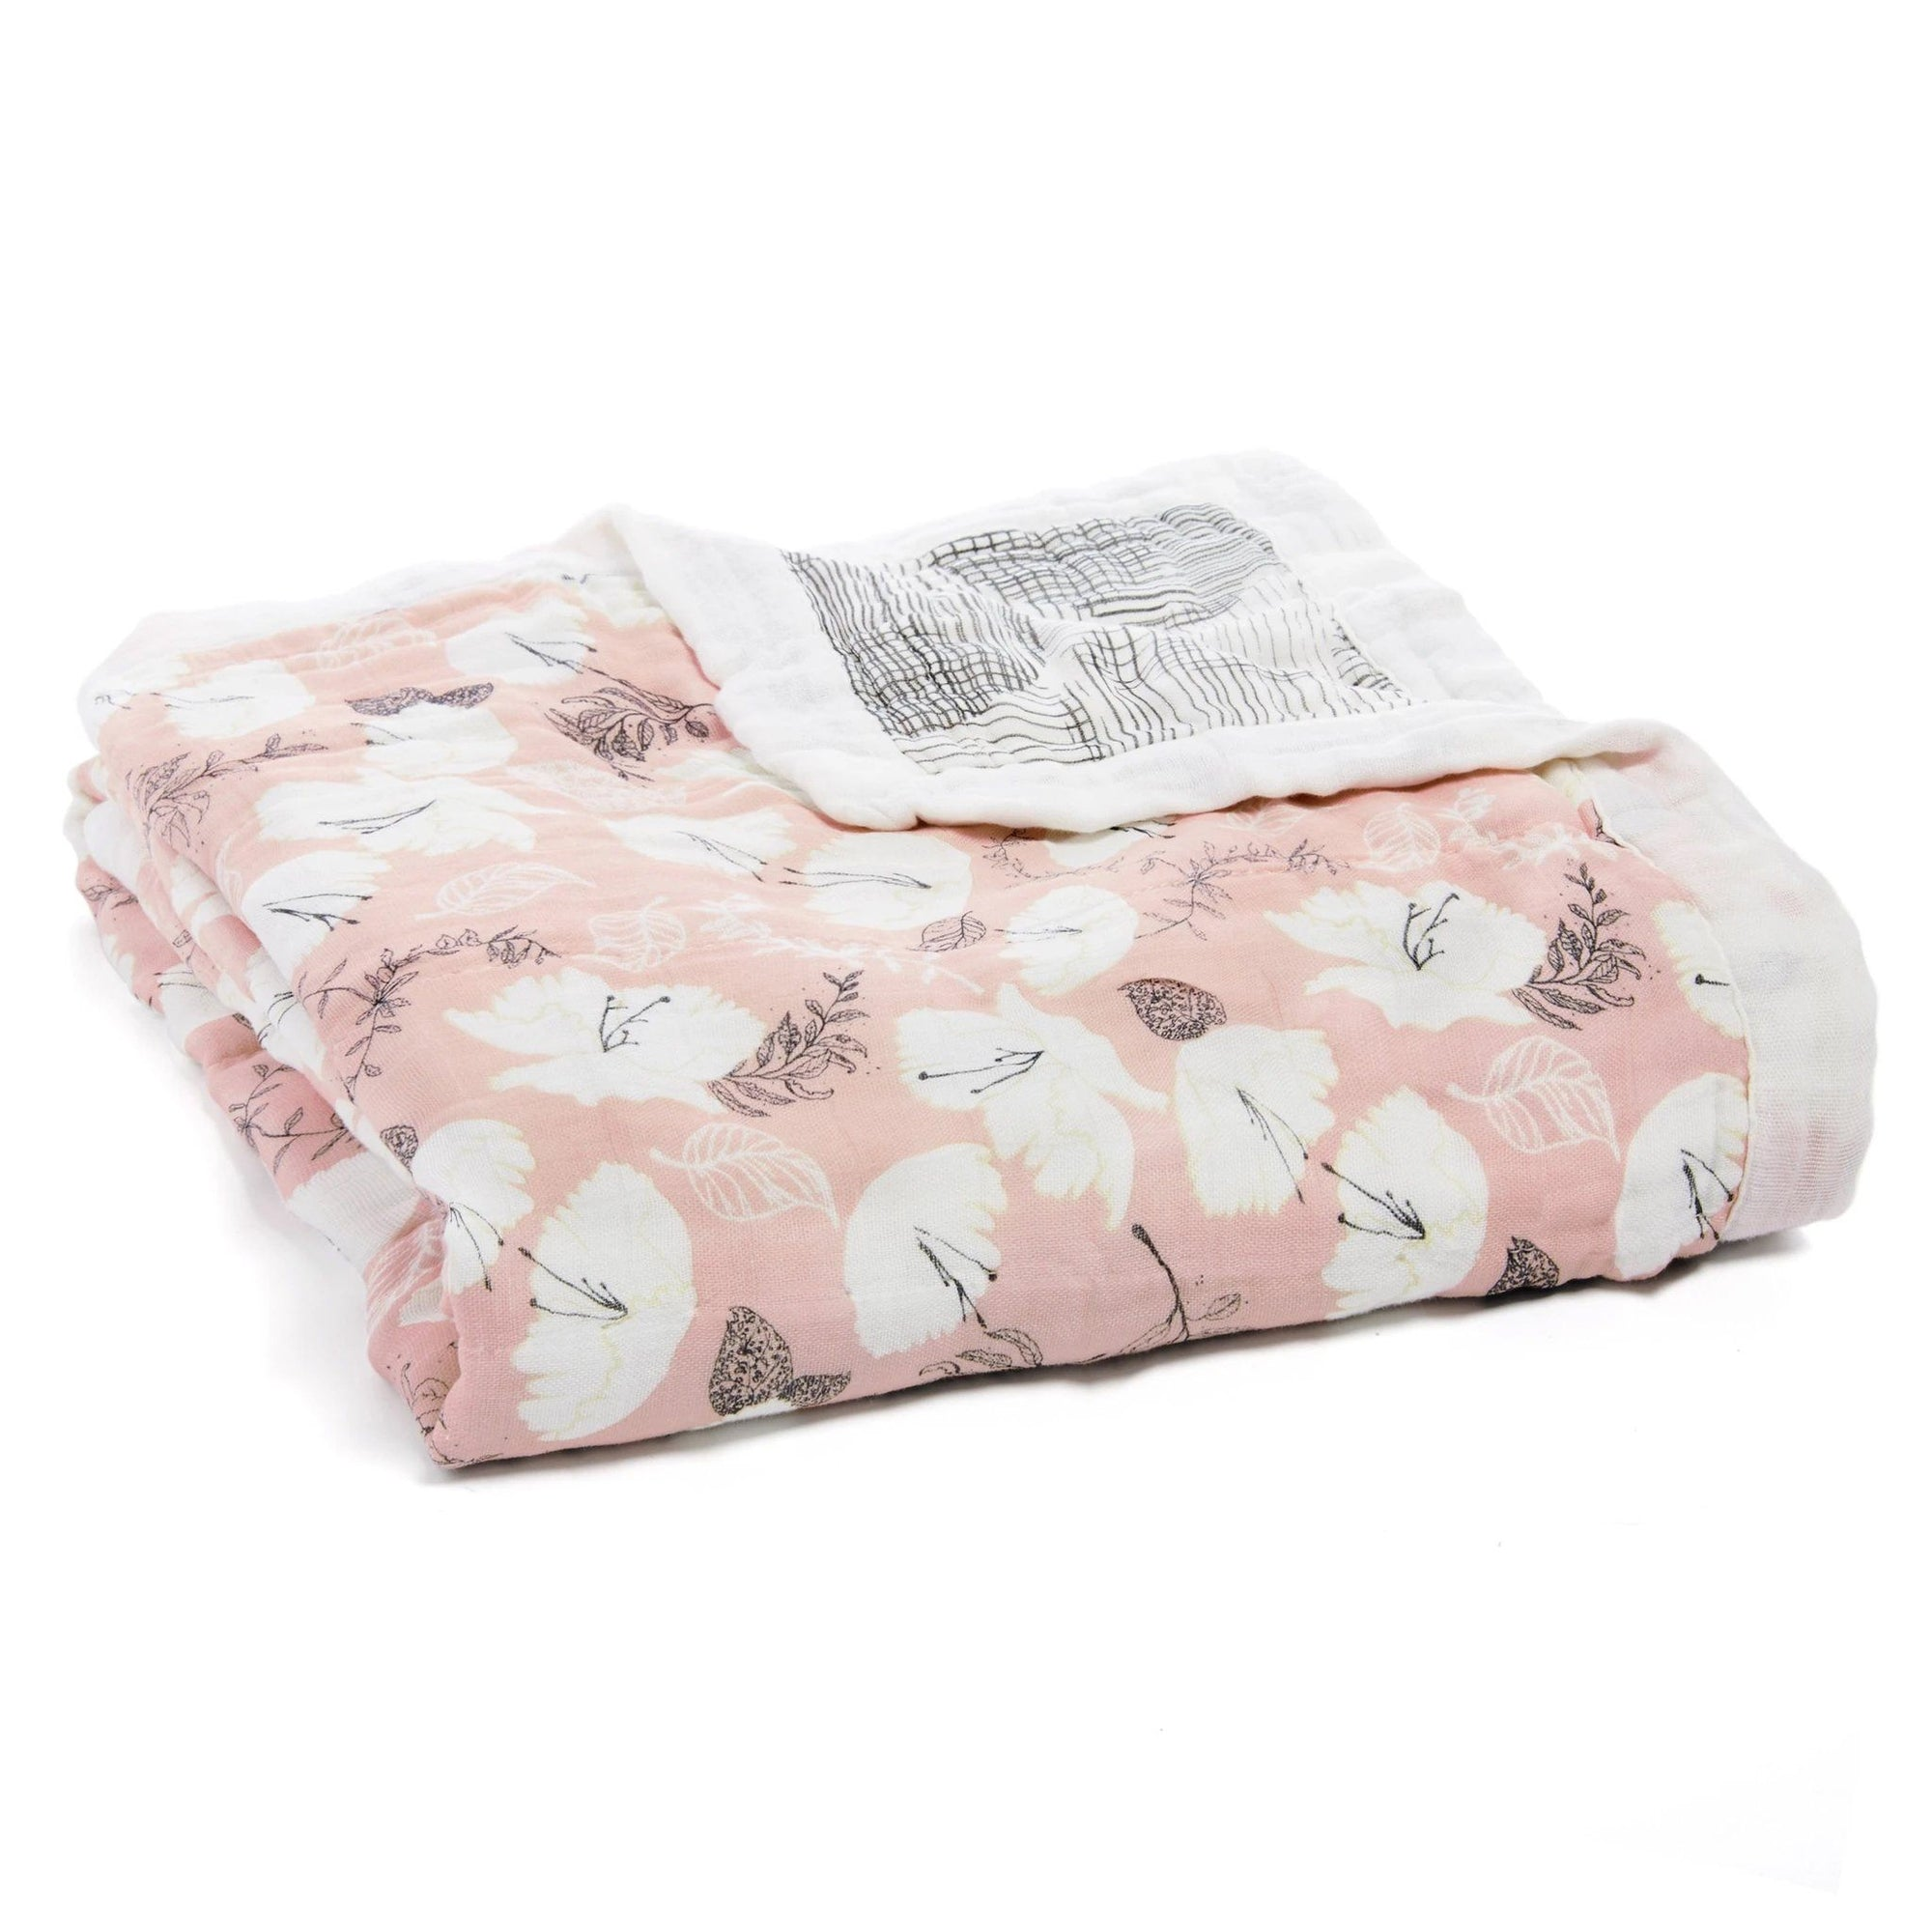 Pretty Petals Silky Dream Blanket